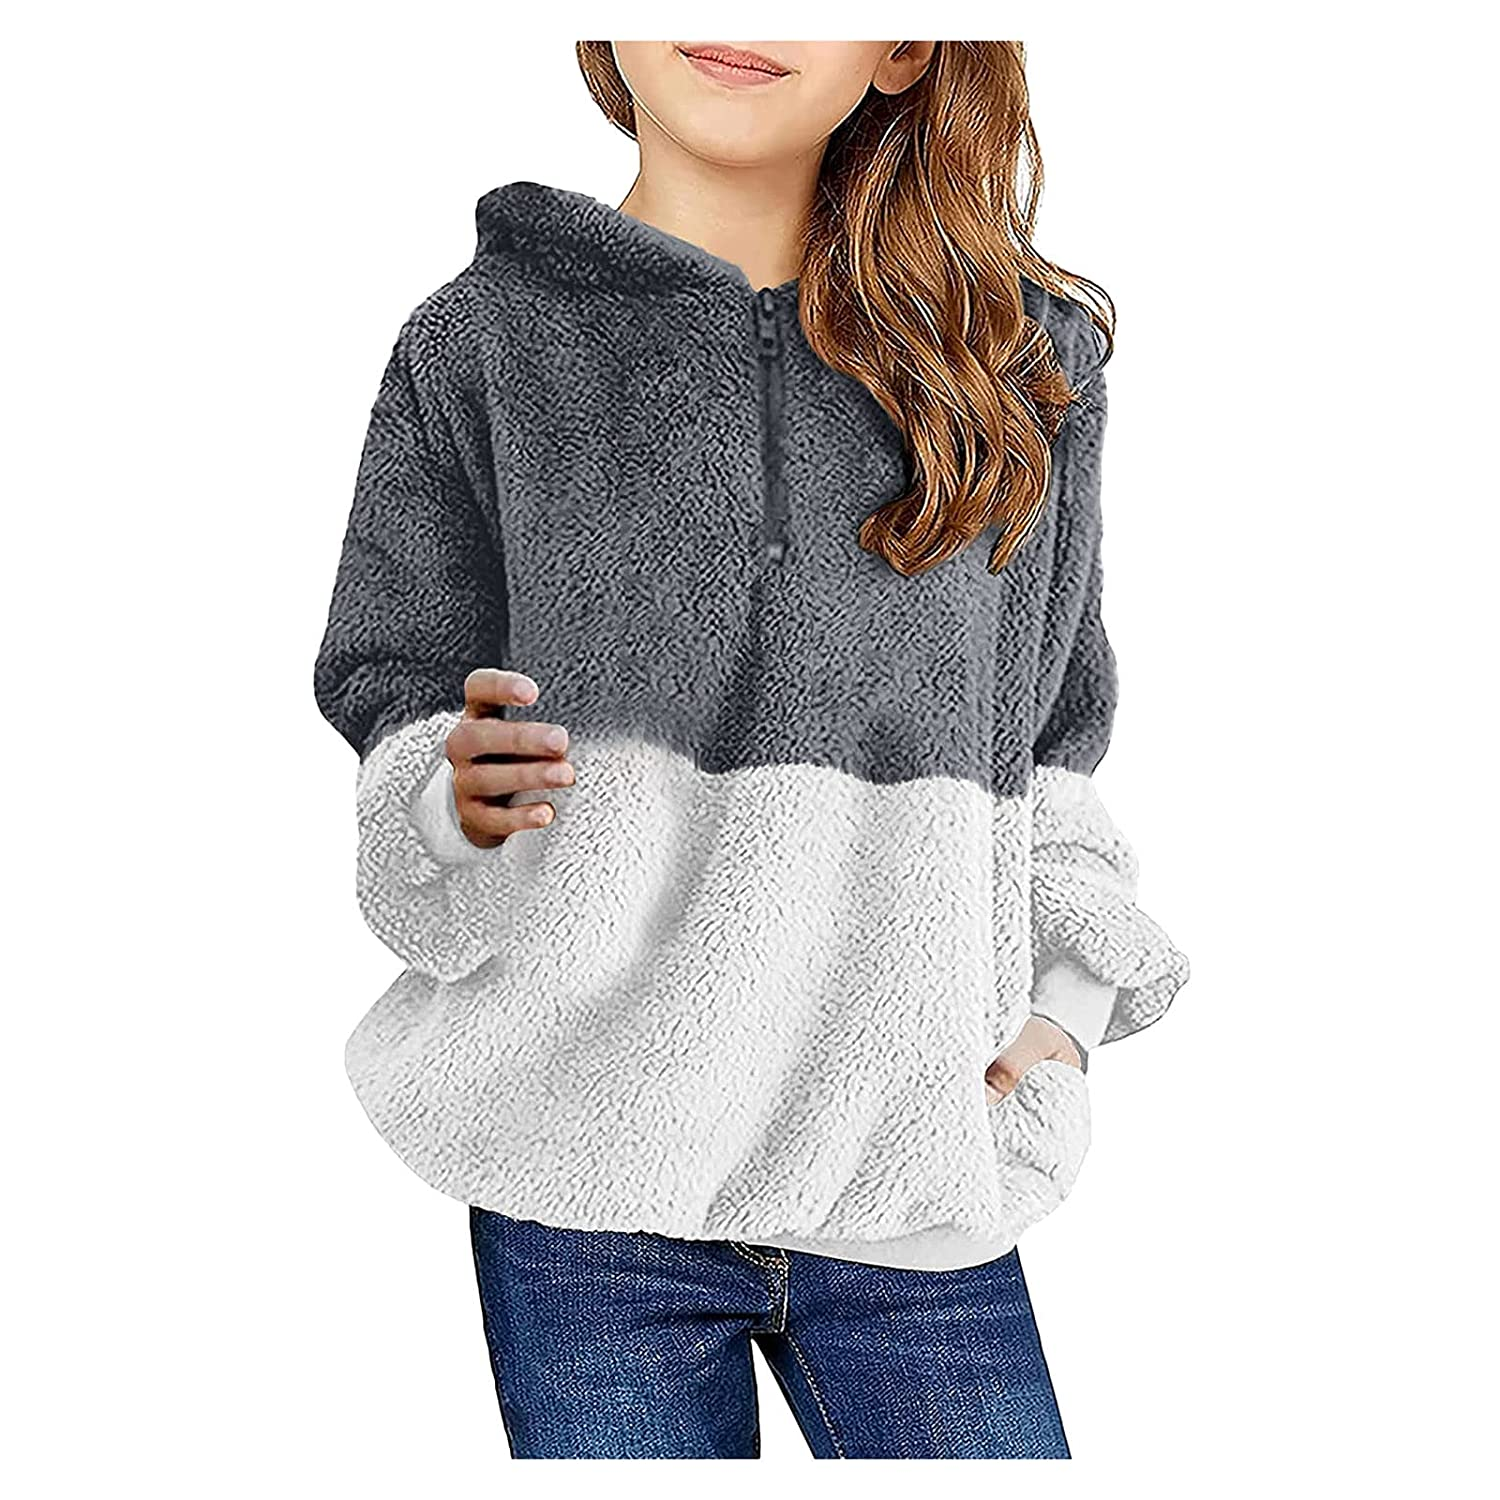 Toddler Boys Girls Hoodies Sweatshirt Printed Pullover Cheap mail order sales Max 55% OFF Lo Hooded